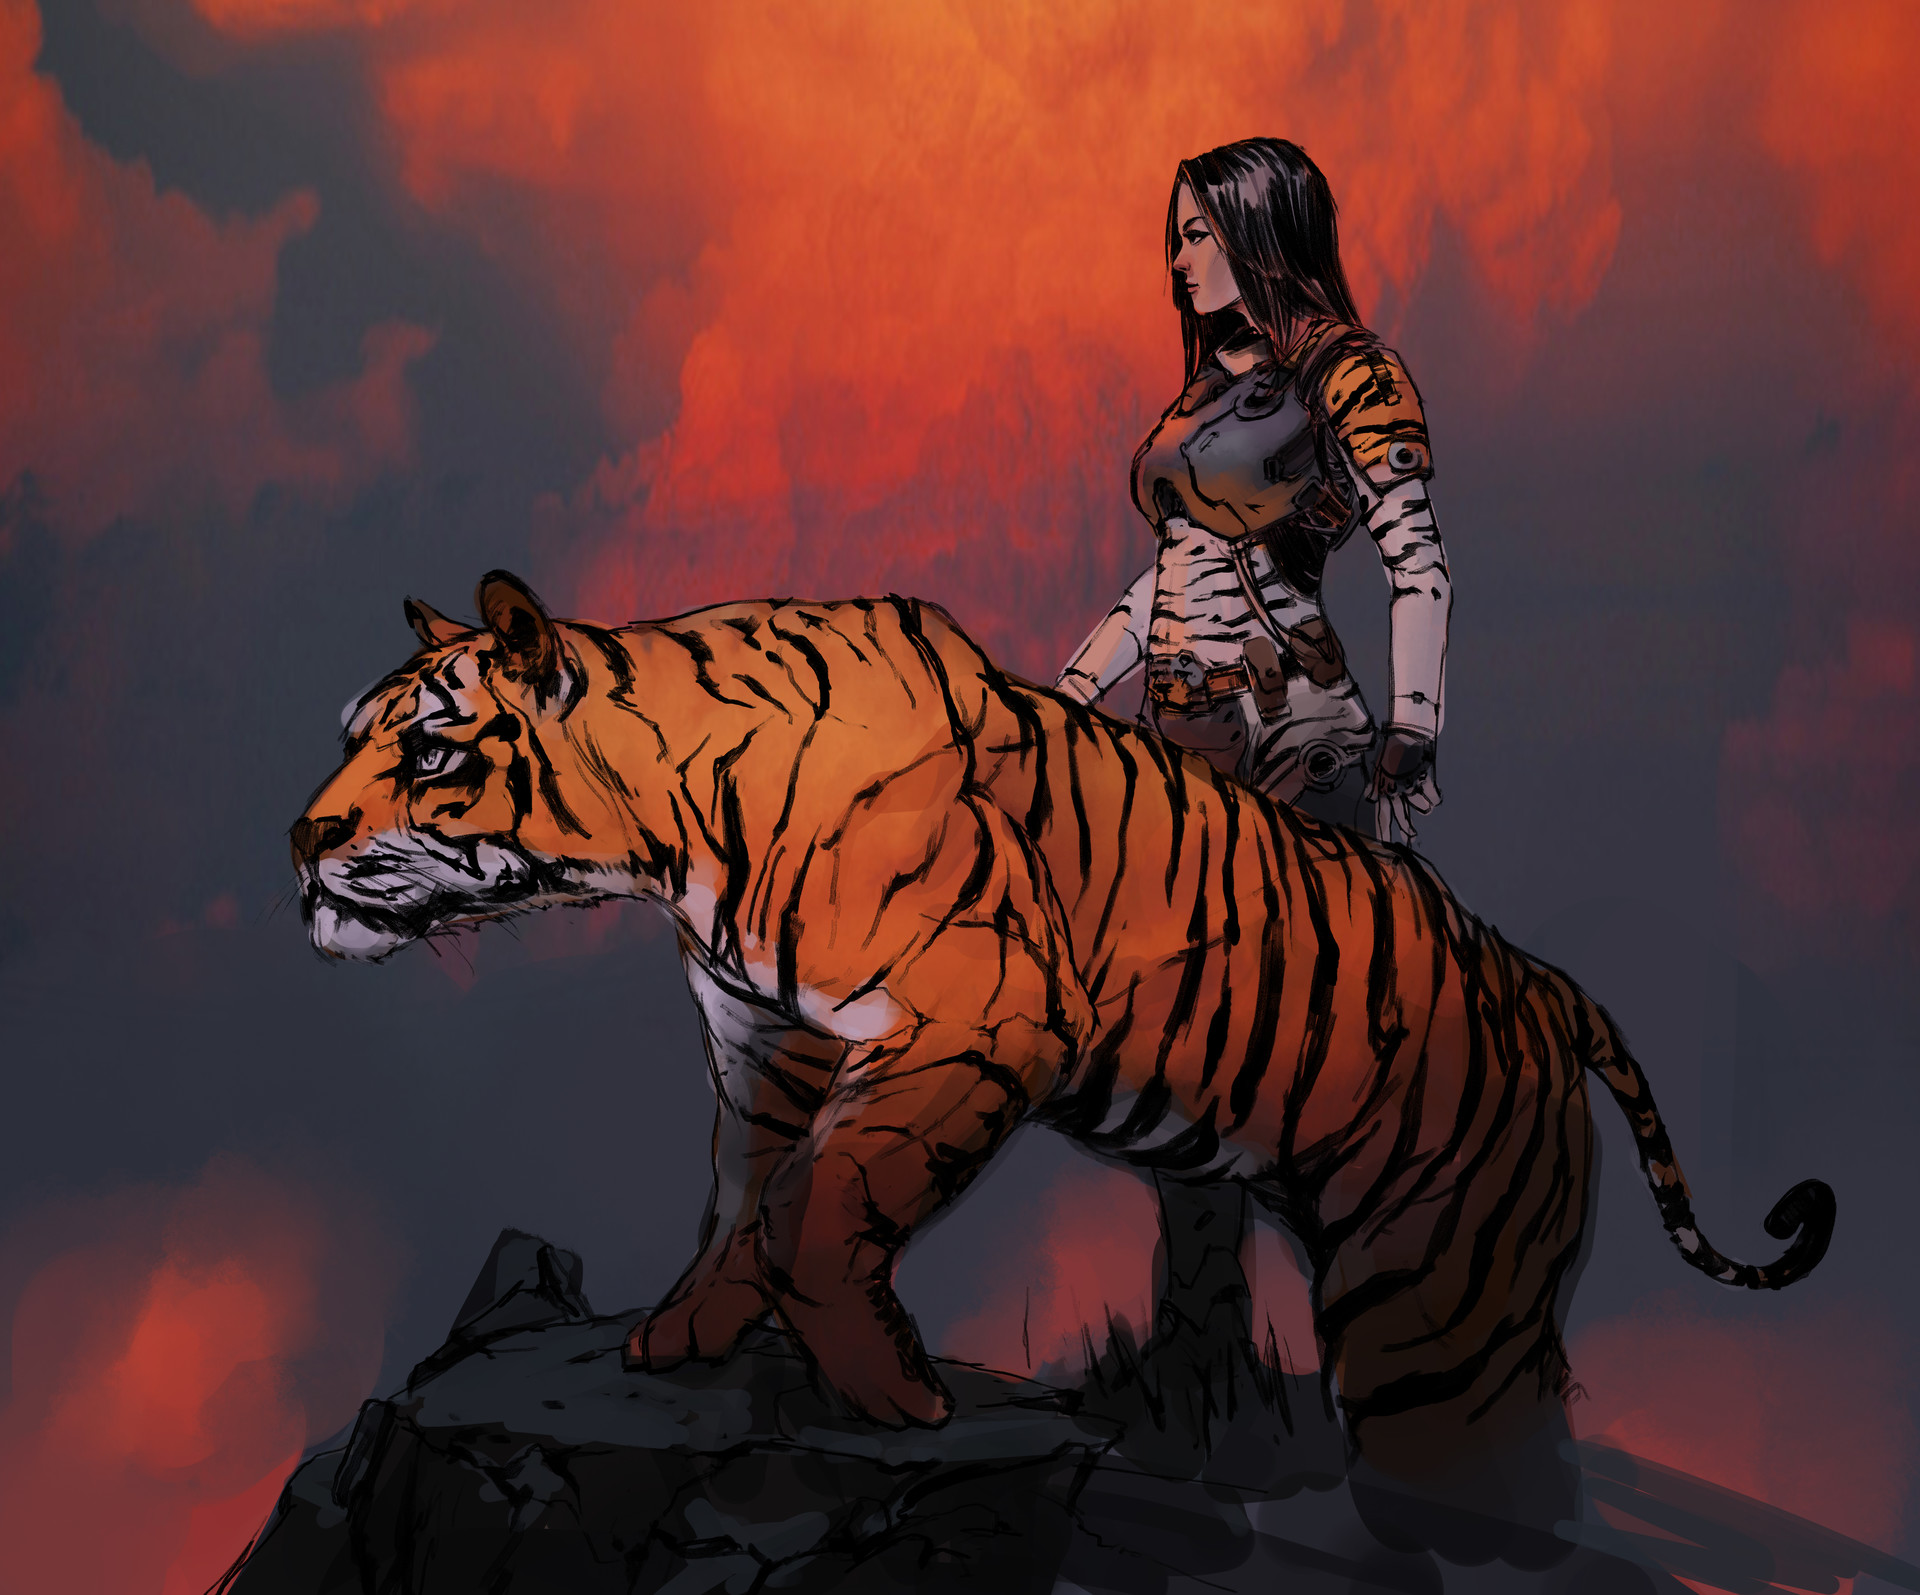 swang-tigersketch-color-01.jpg